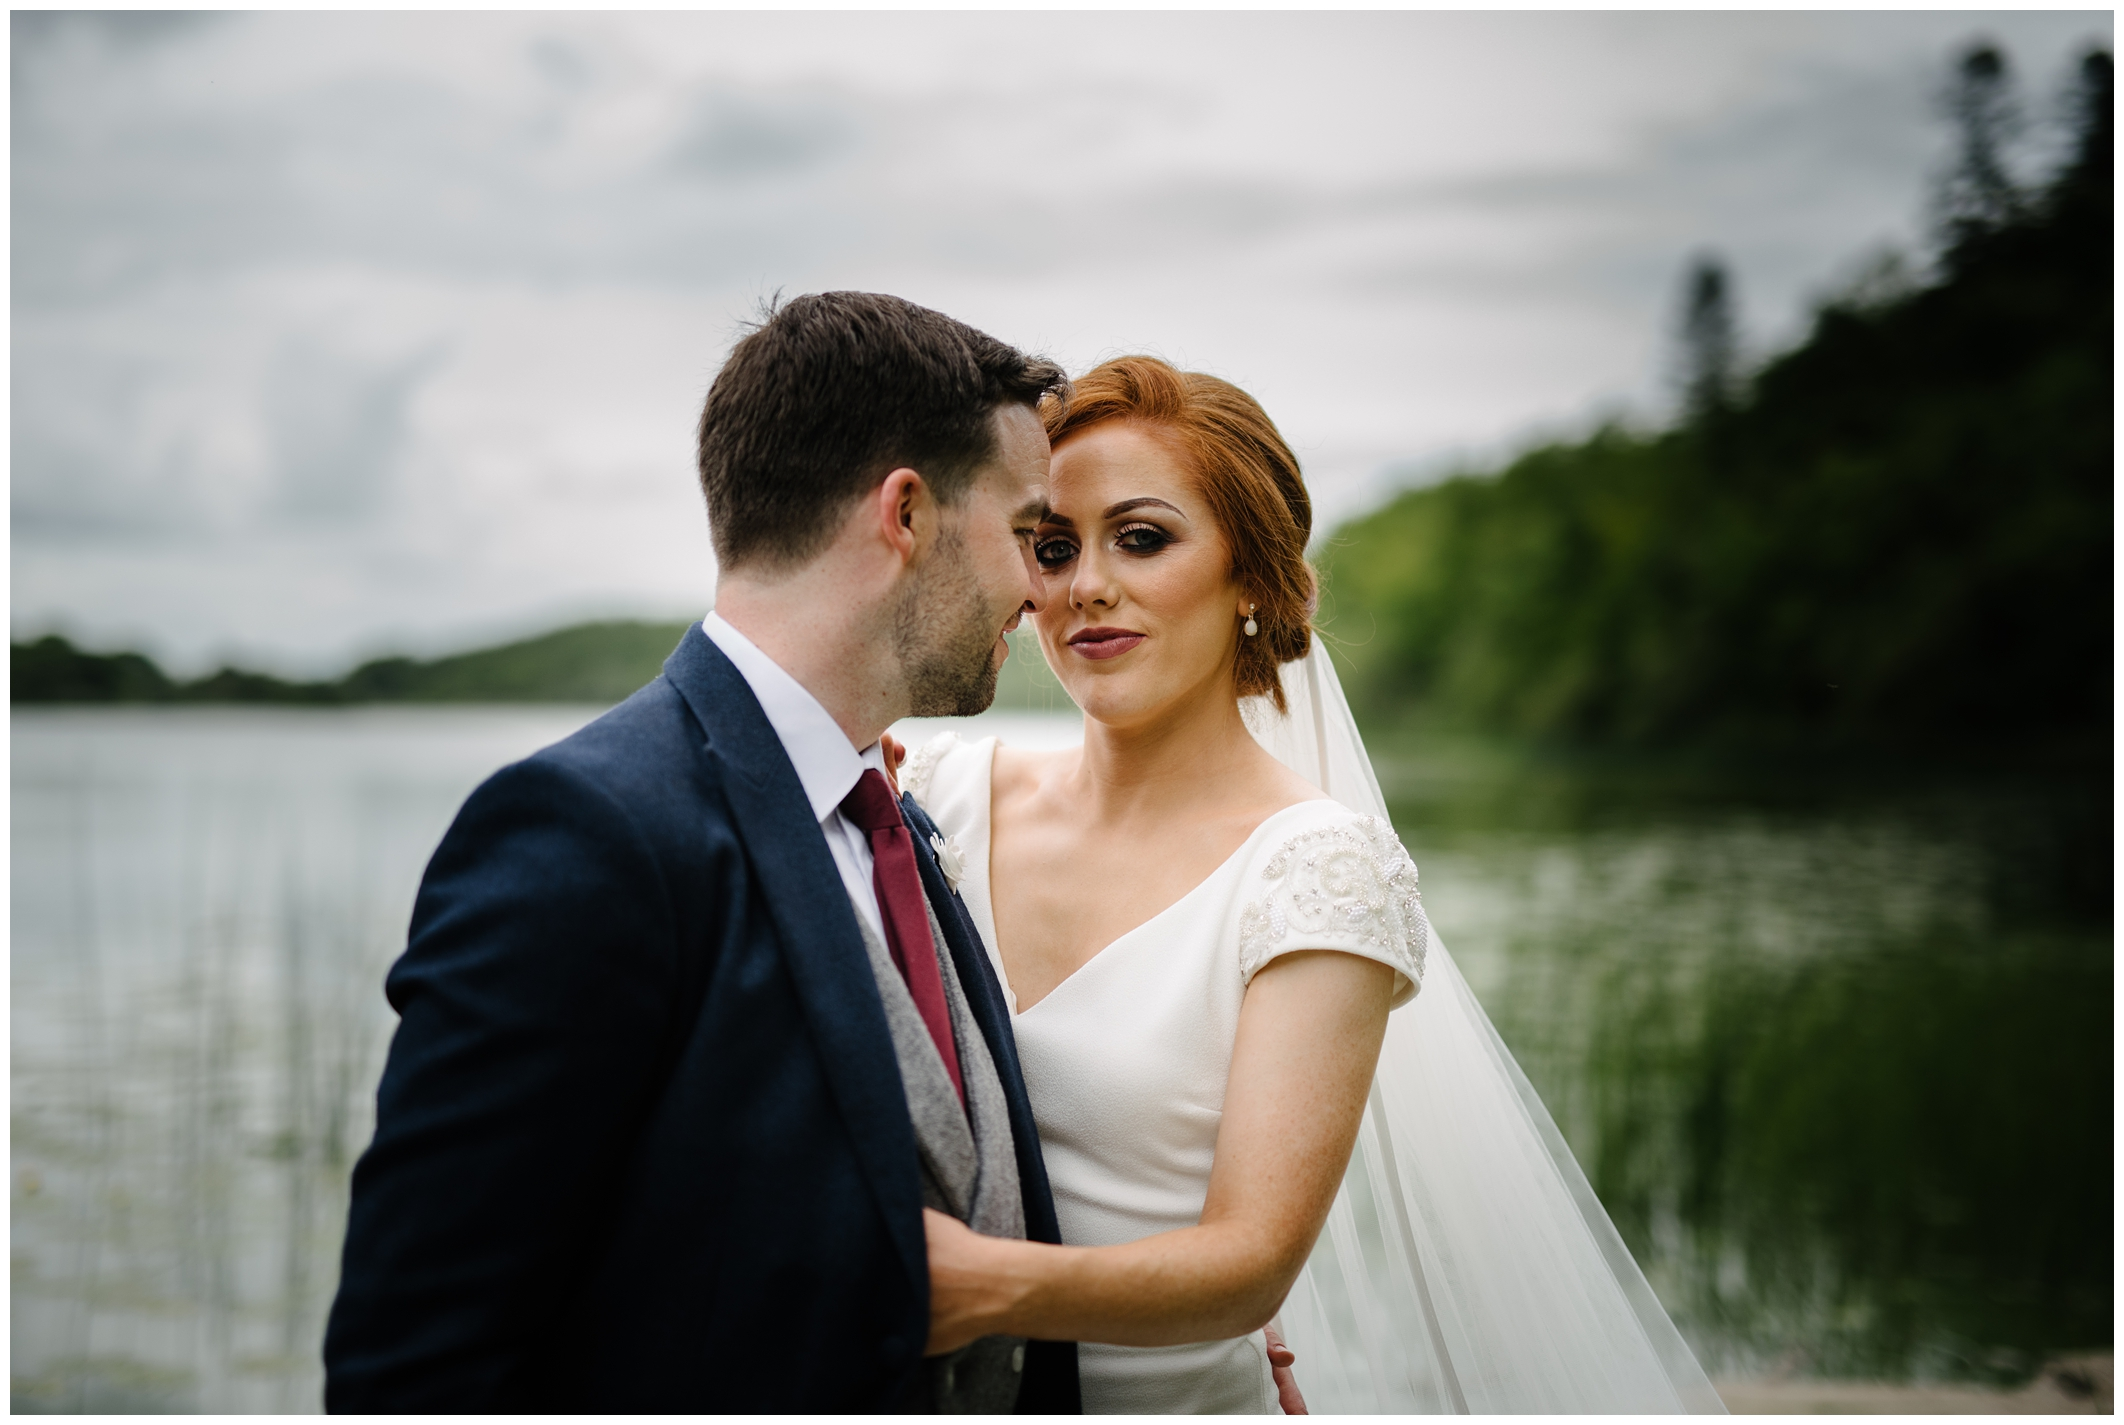 sinead_emmet_farnham_estate_wedding_jude_browne_photography_0124.jpg